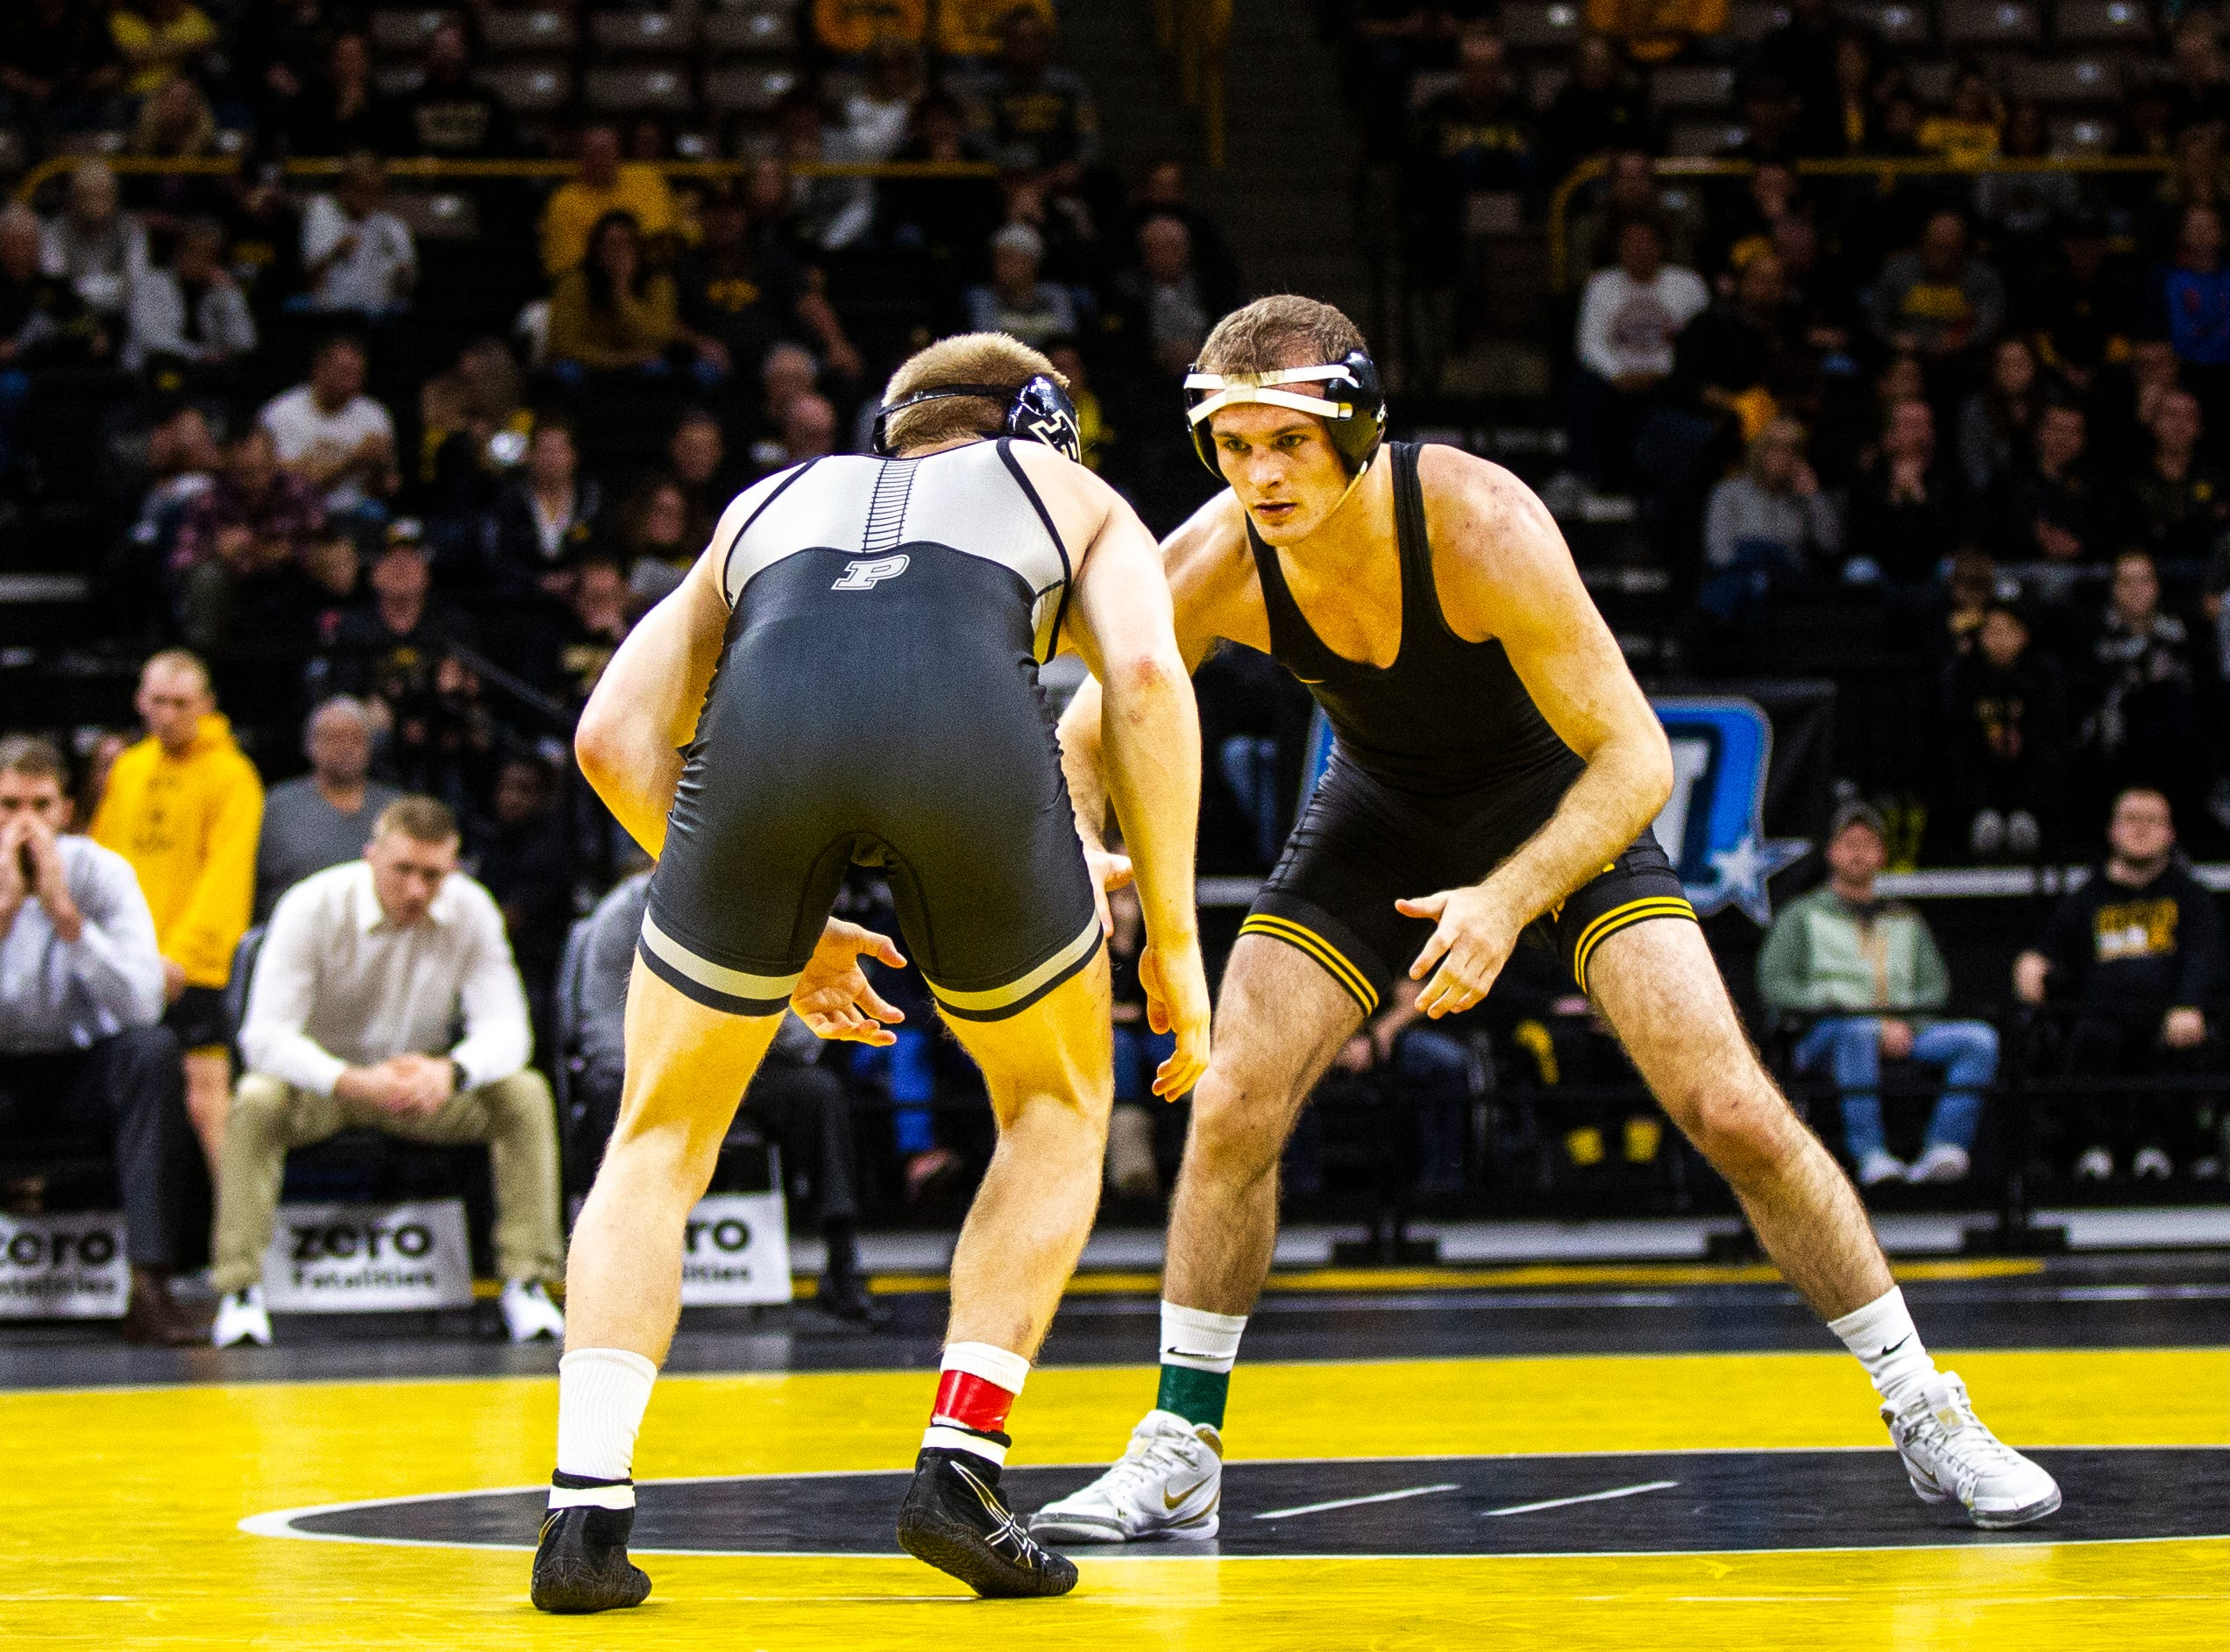 Iowa's Carter Happel (right) wrestles Purdue's Parker Filius at 149 during a Big Ten Conference NCAA wrestling dual on Saturday, Nov. 24, 2018, at Carver-Hawkeye Arena in Iowa City.